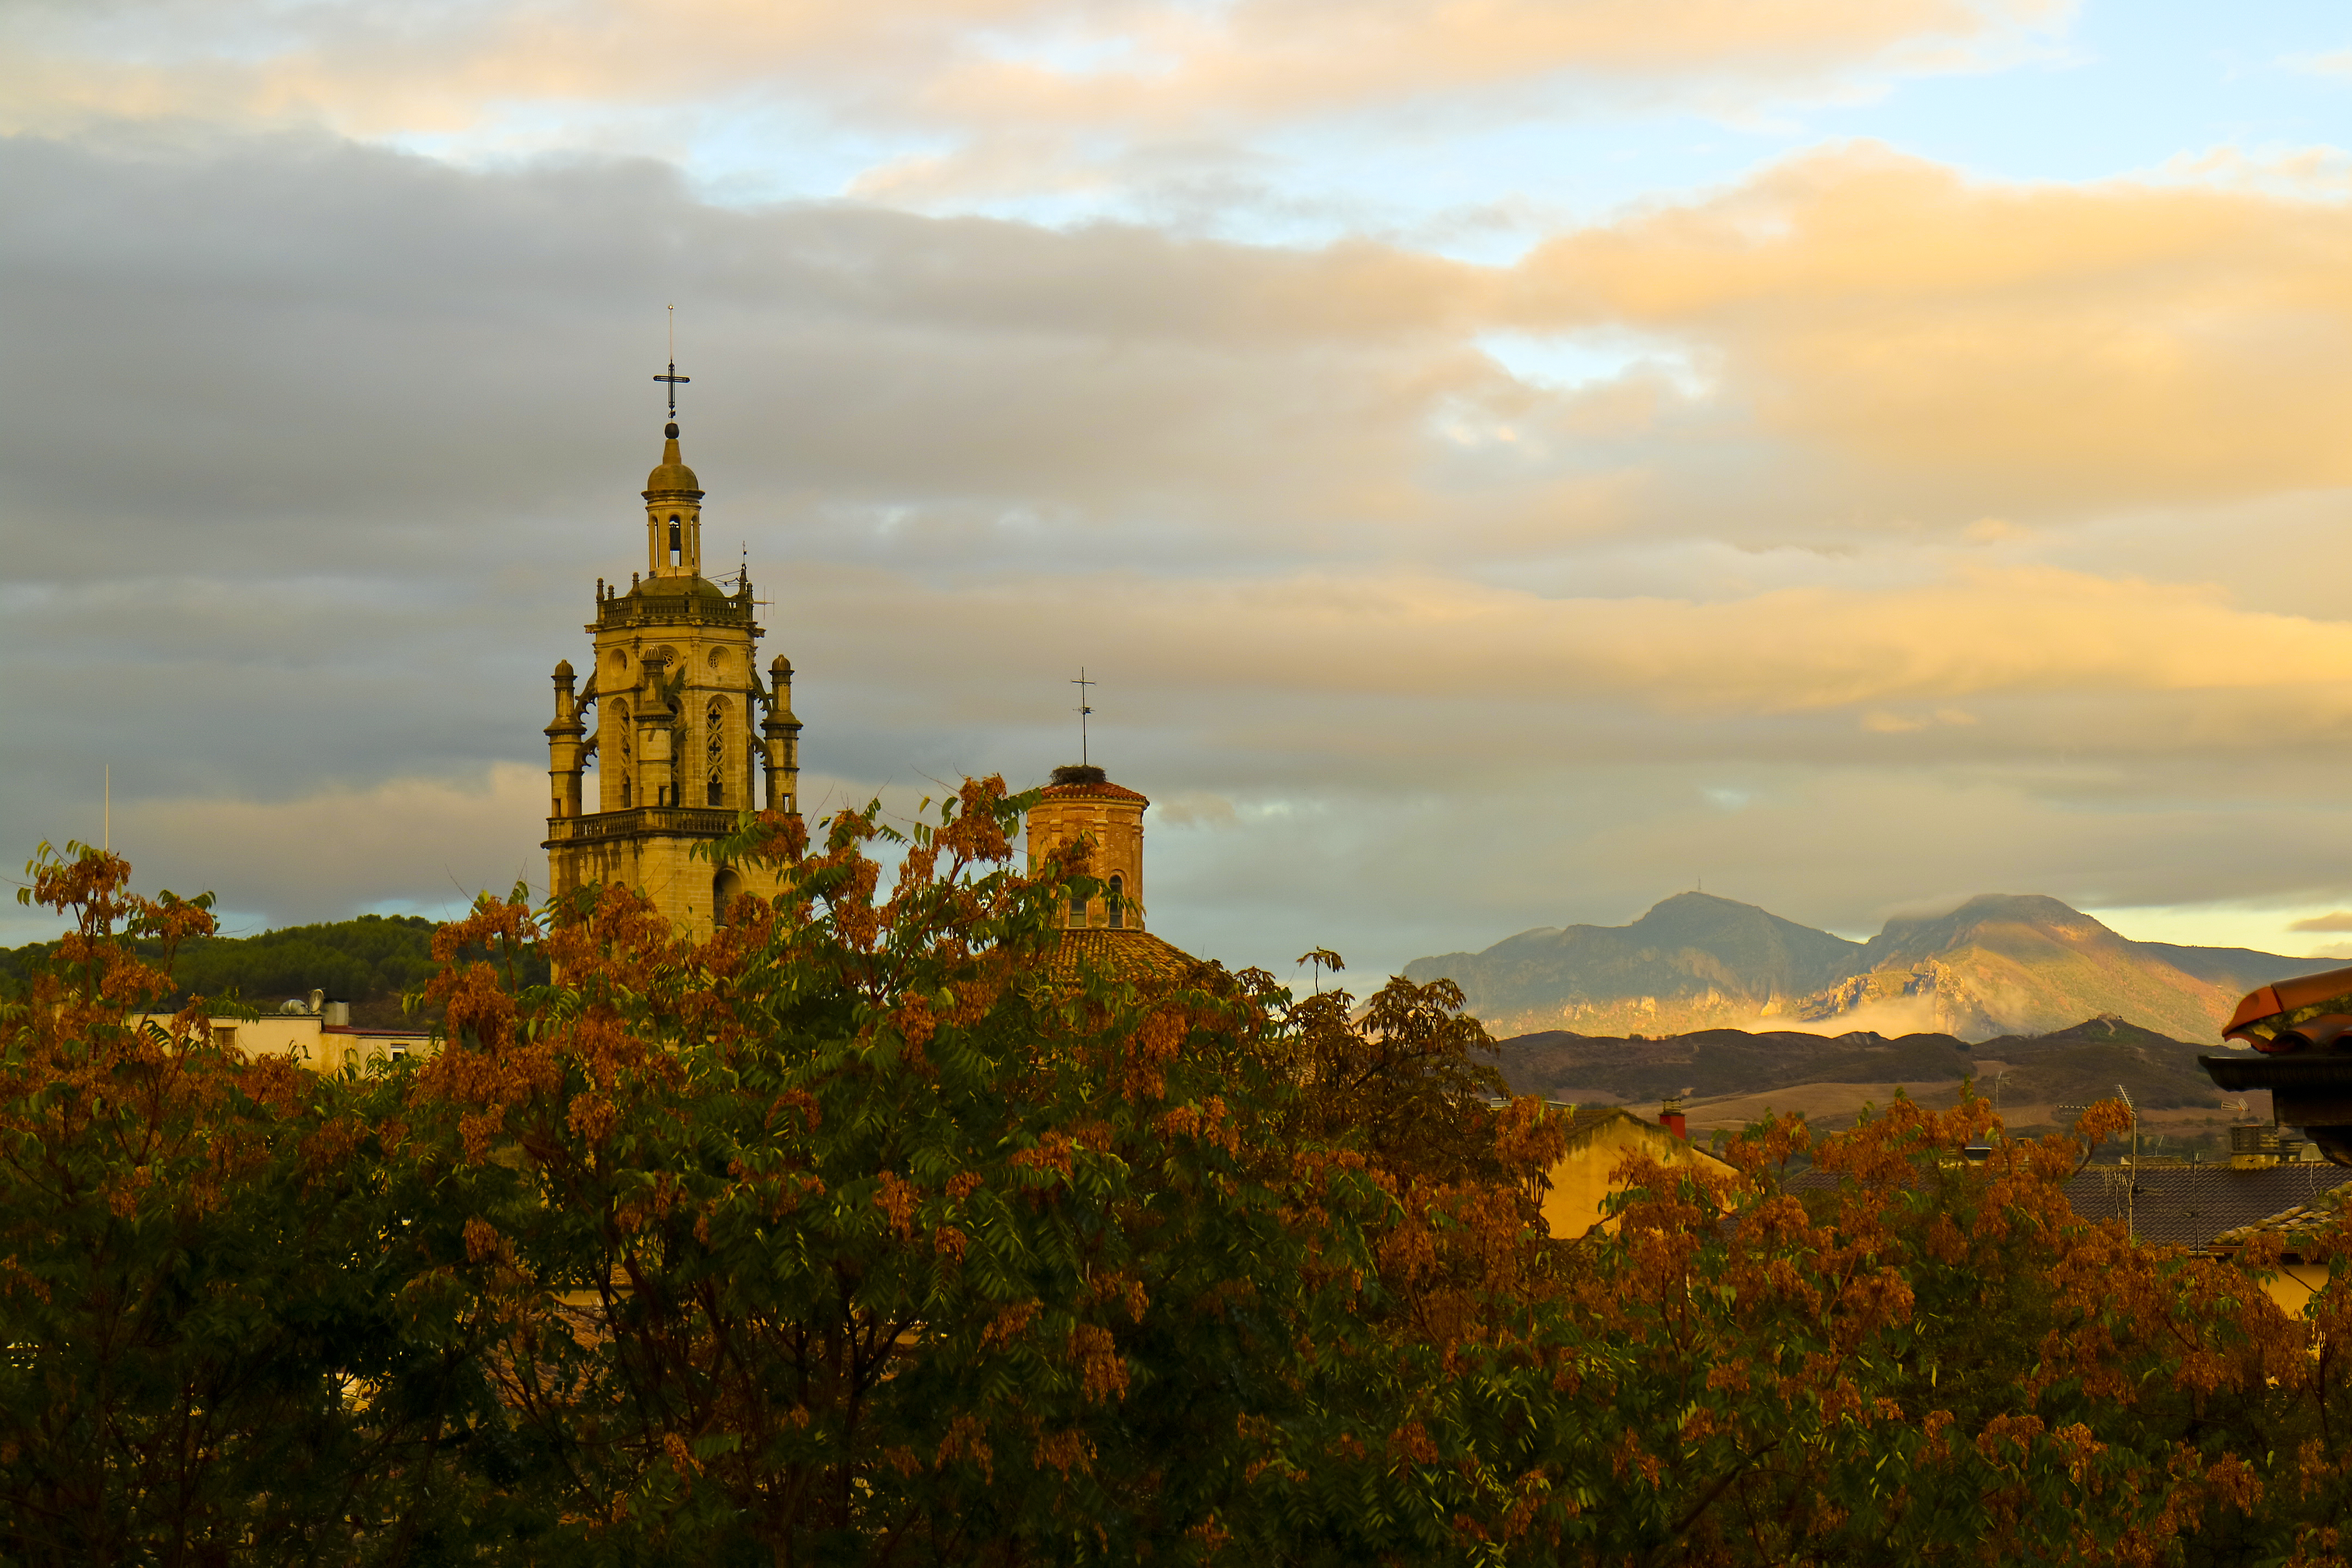 Carrion de los Condes, Sunset, Tower, Tree, Sky, HQ Photo